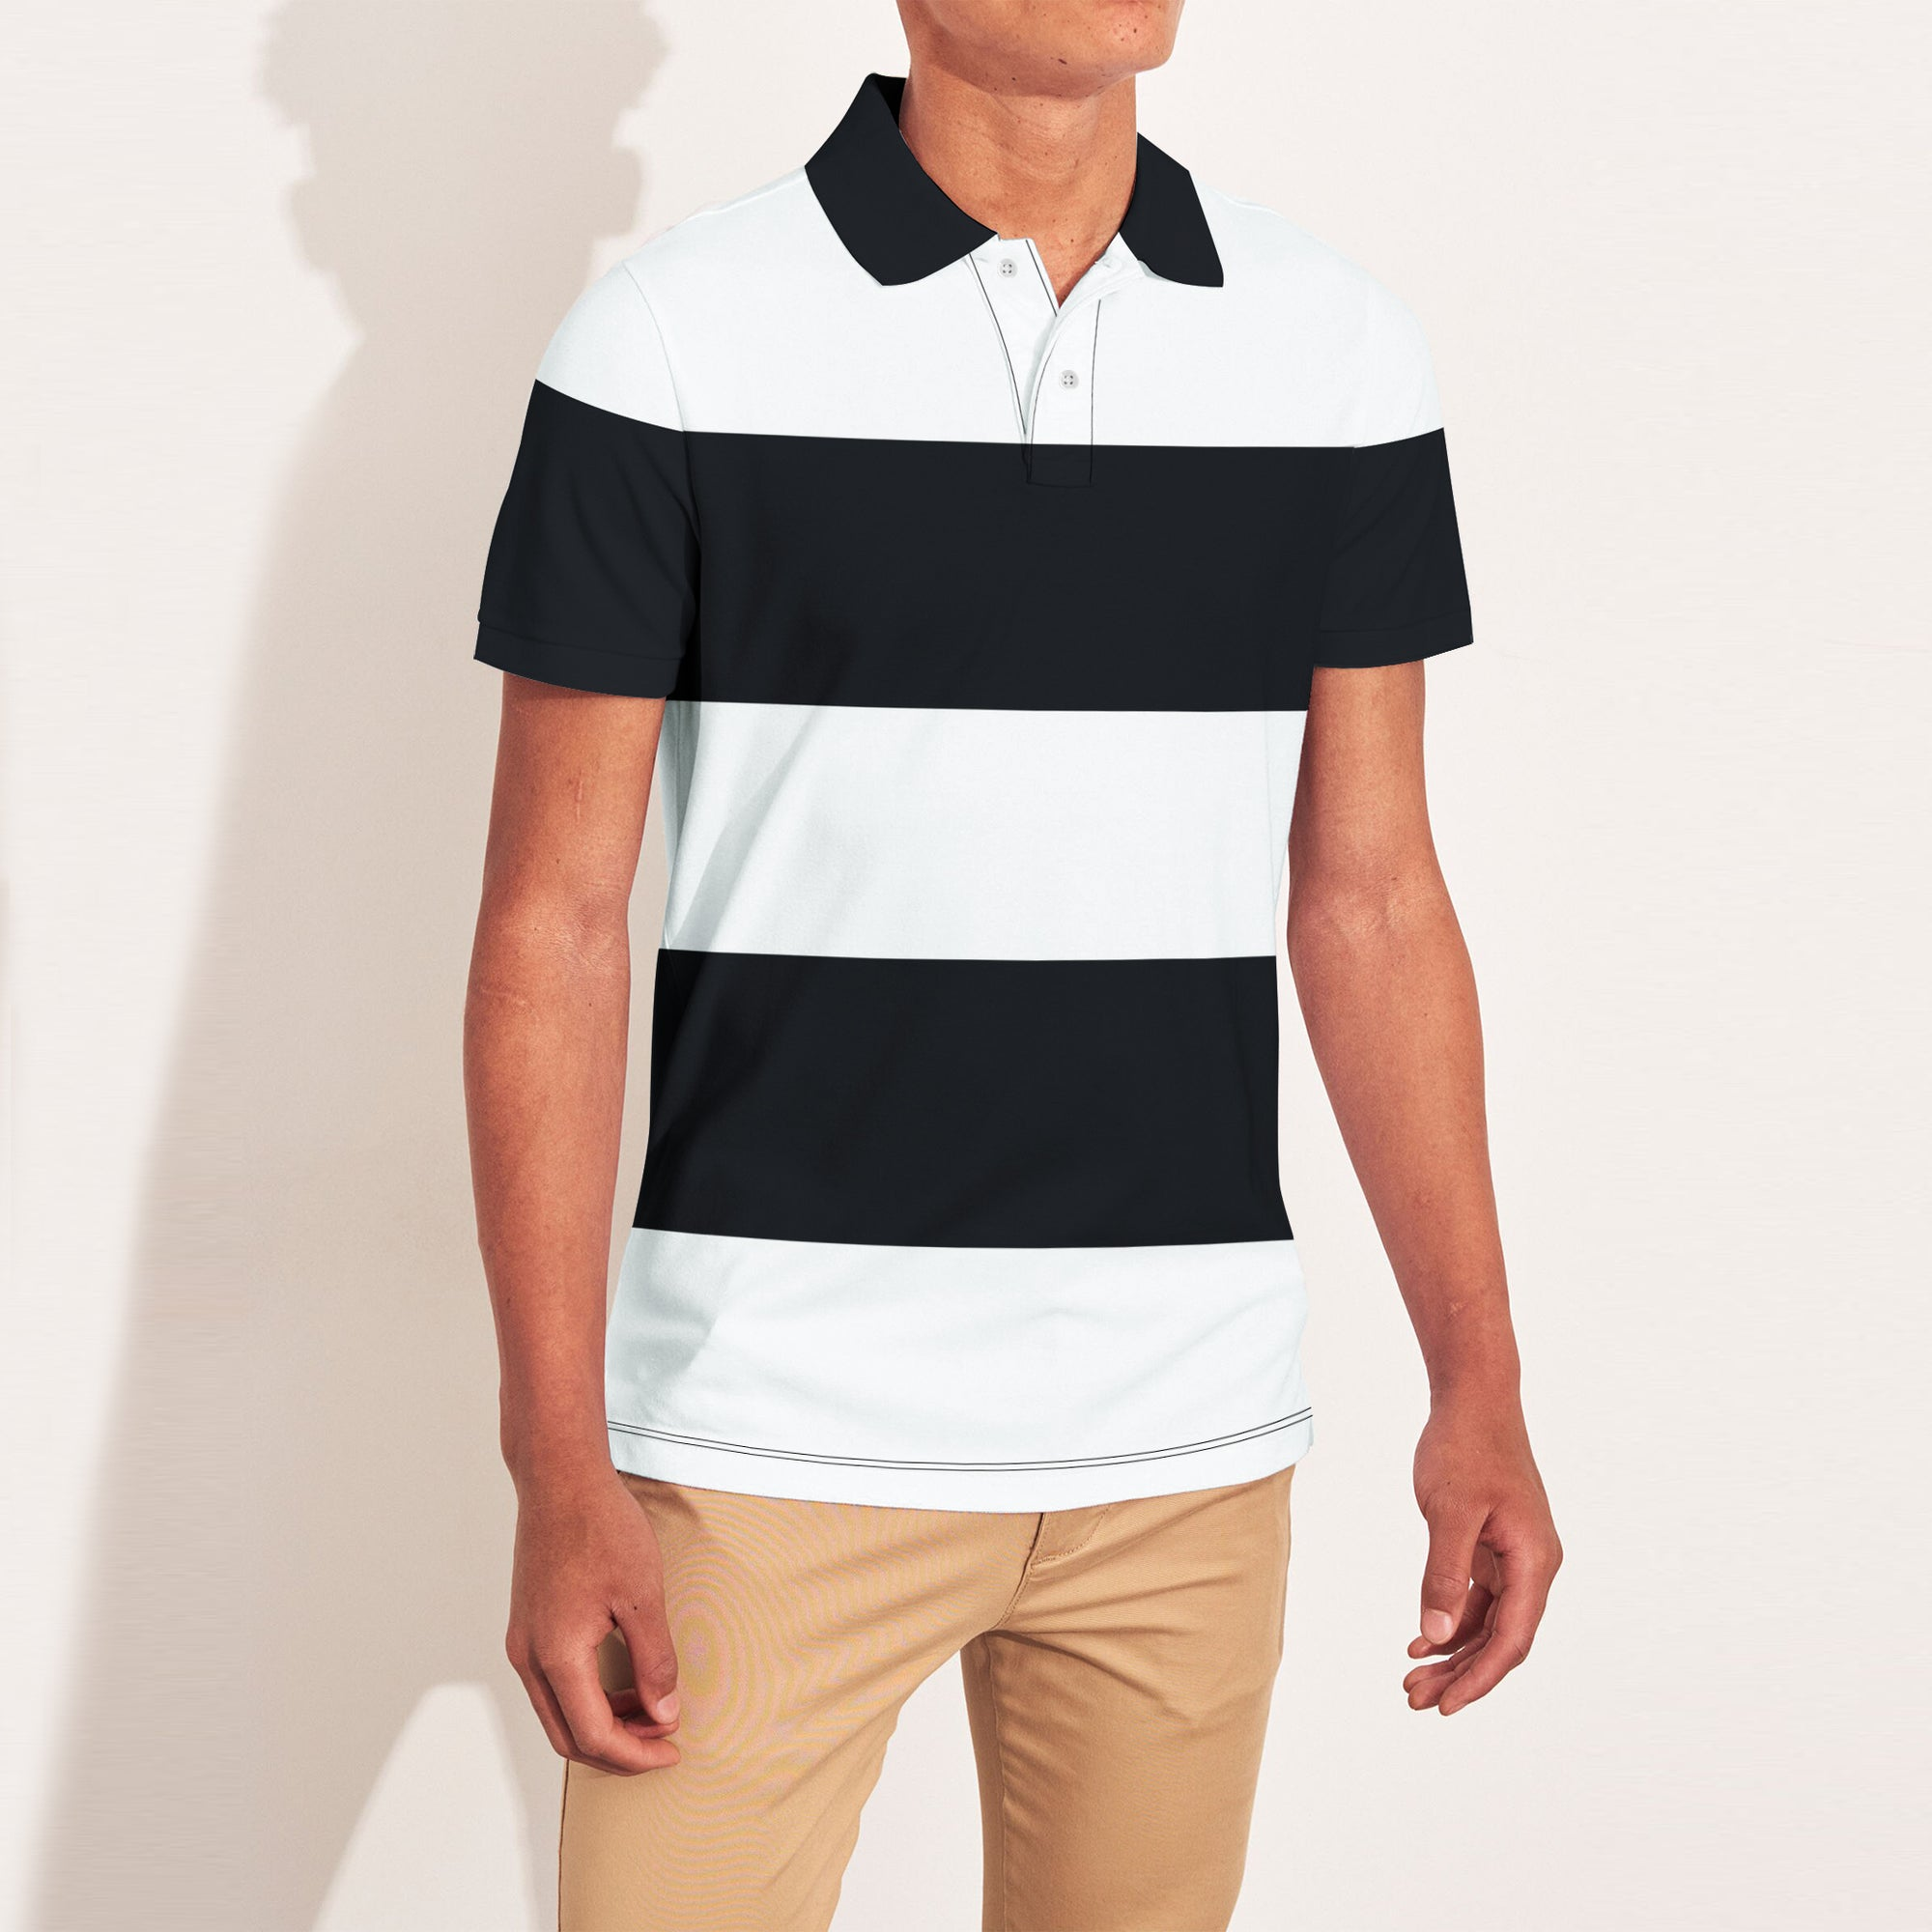 brandsego - The Modern Short Sleeve P.Q Polo Shirt For Men-BE9004